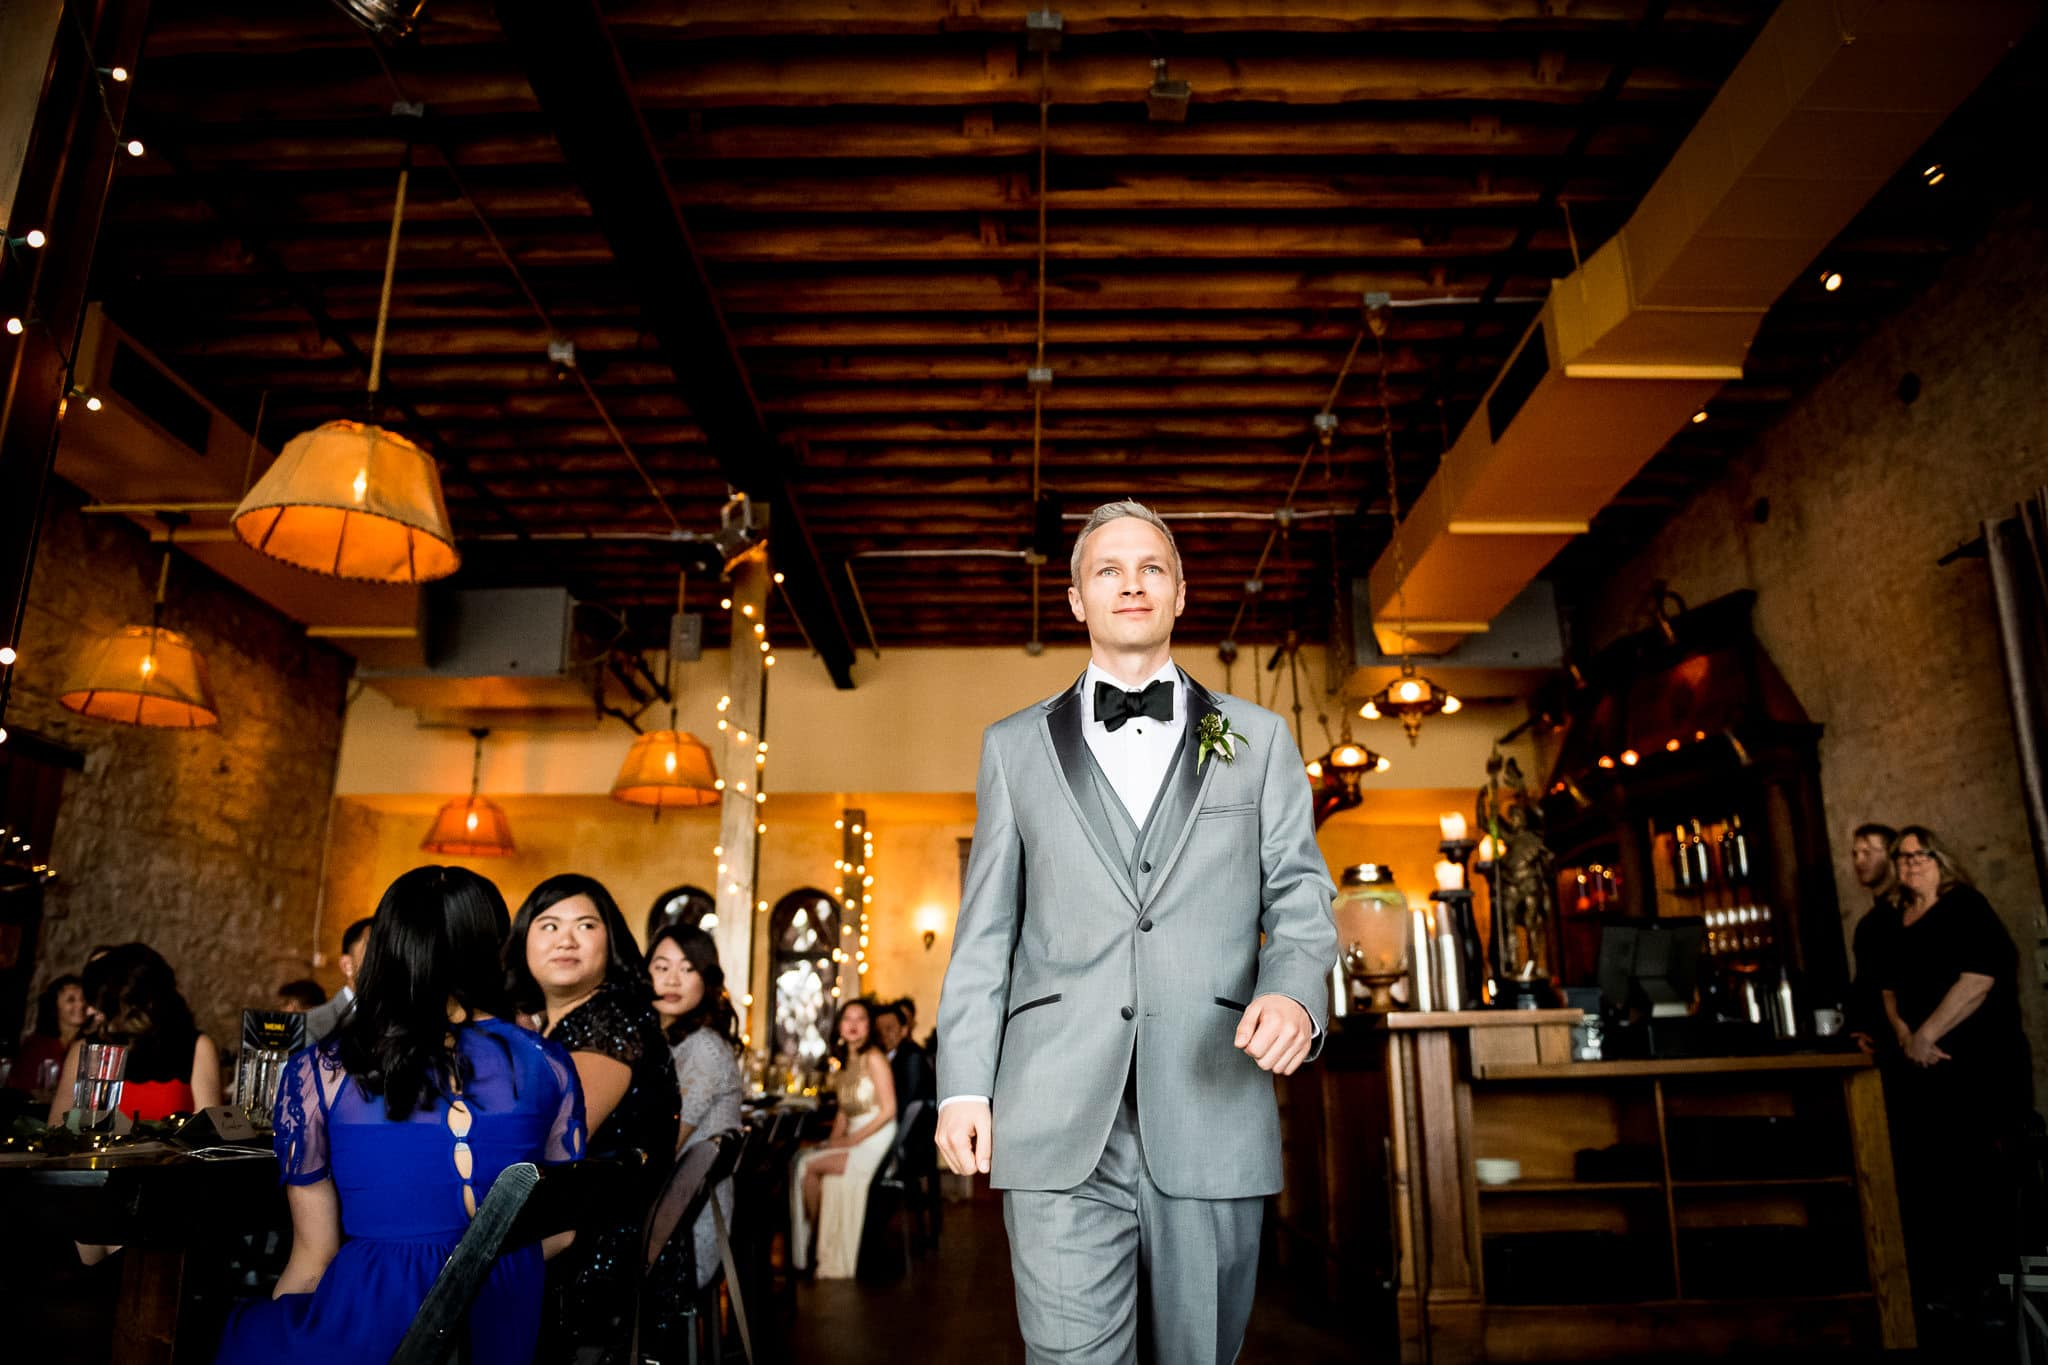 Aster Cafe wedding Photo of Groom walking down the aisle 2